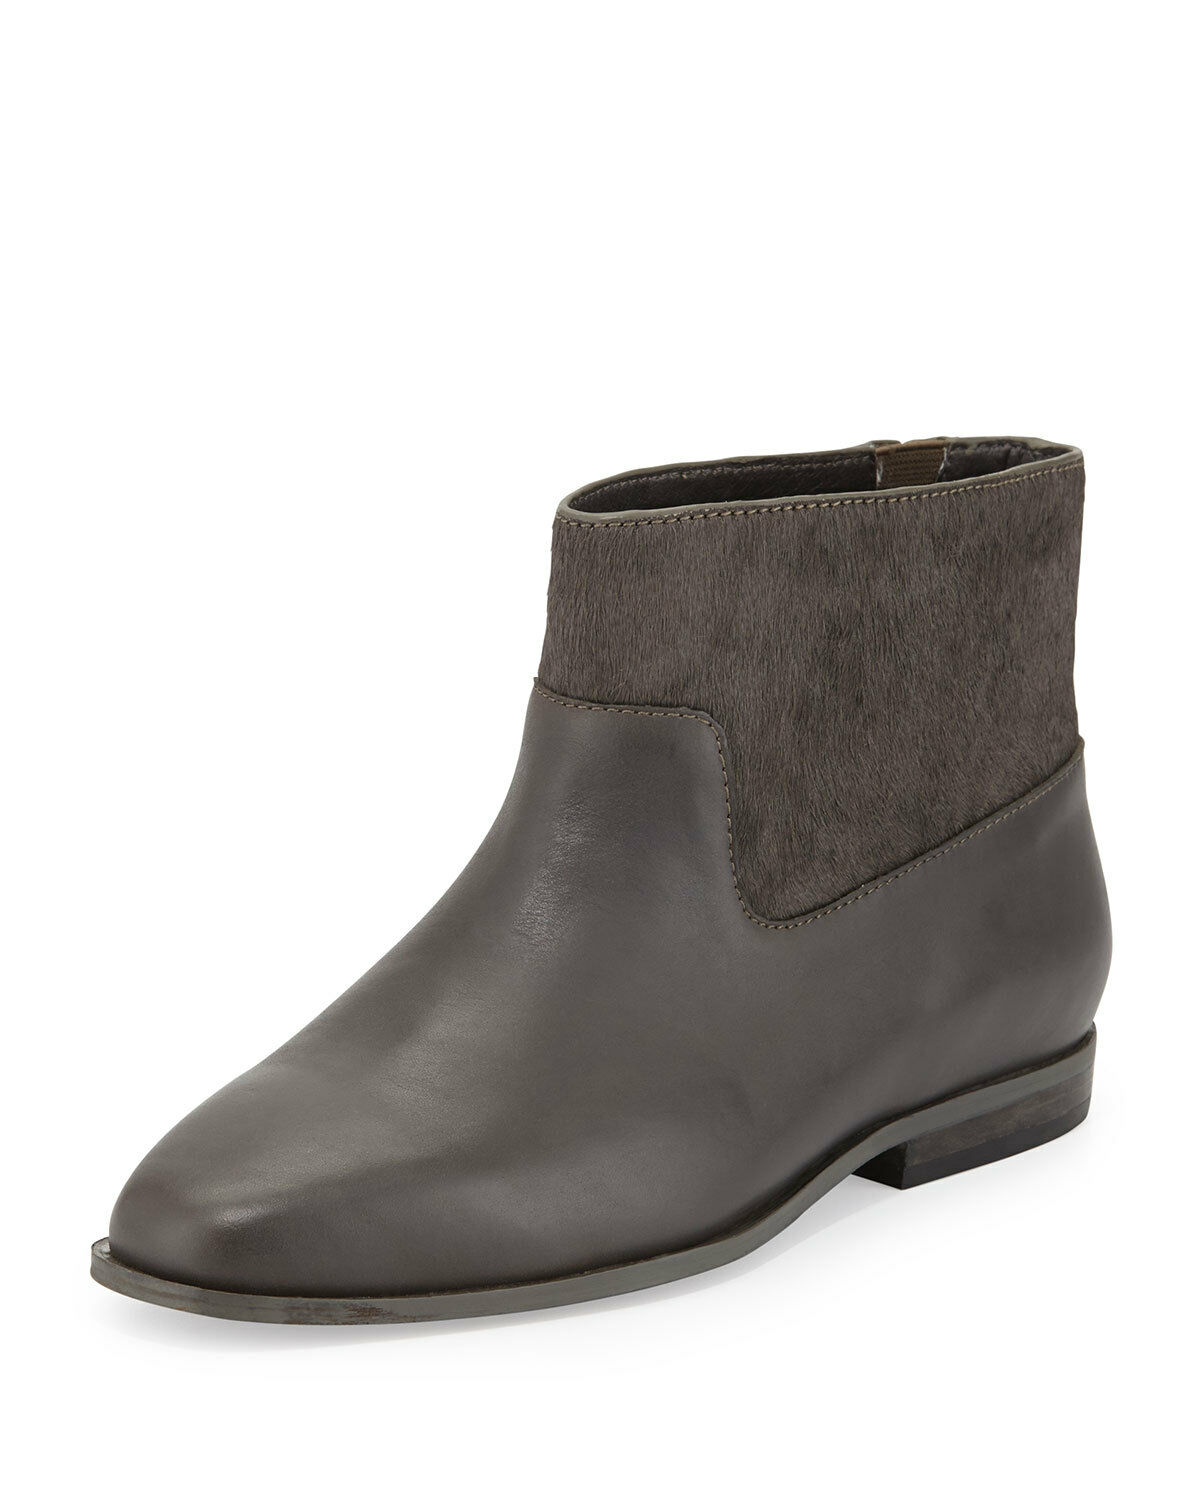 Saint & Libertine Trinket Calf Hair Ankle Boot, Slate SIZE 8.5 M